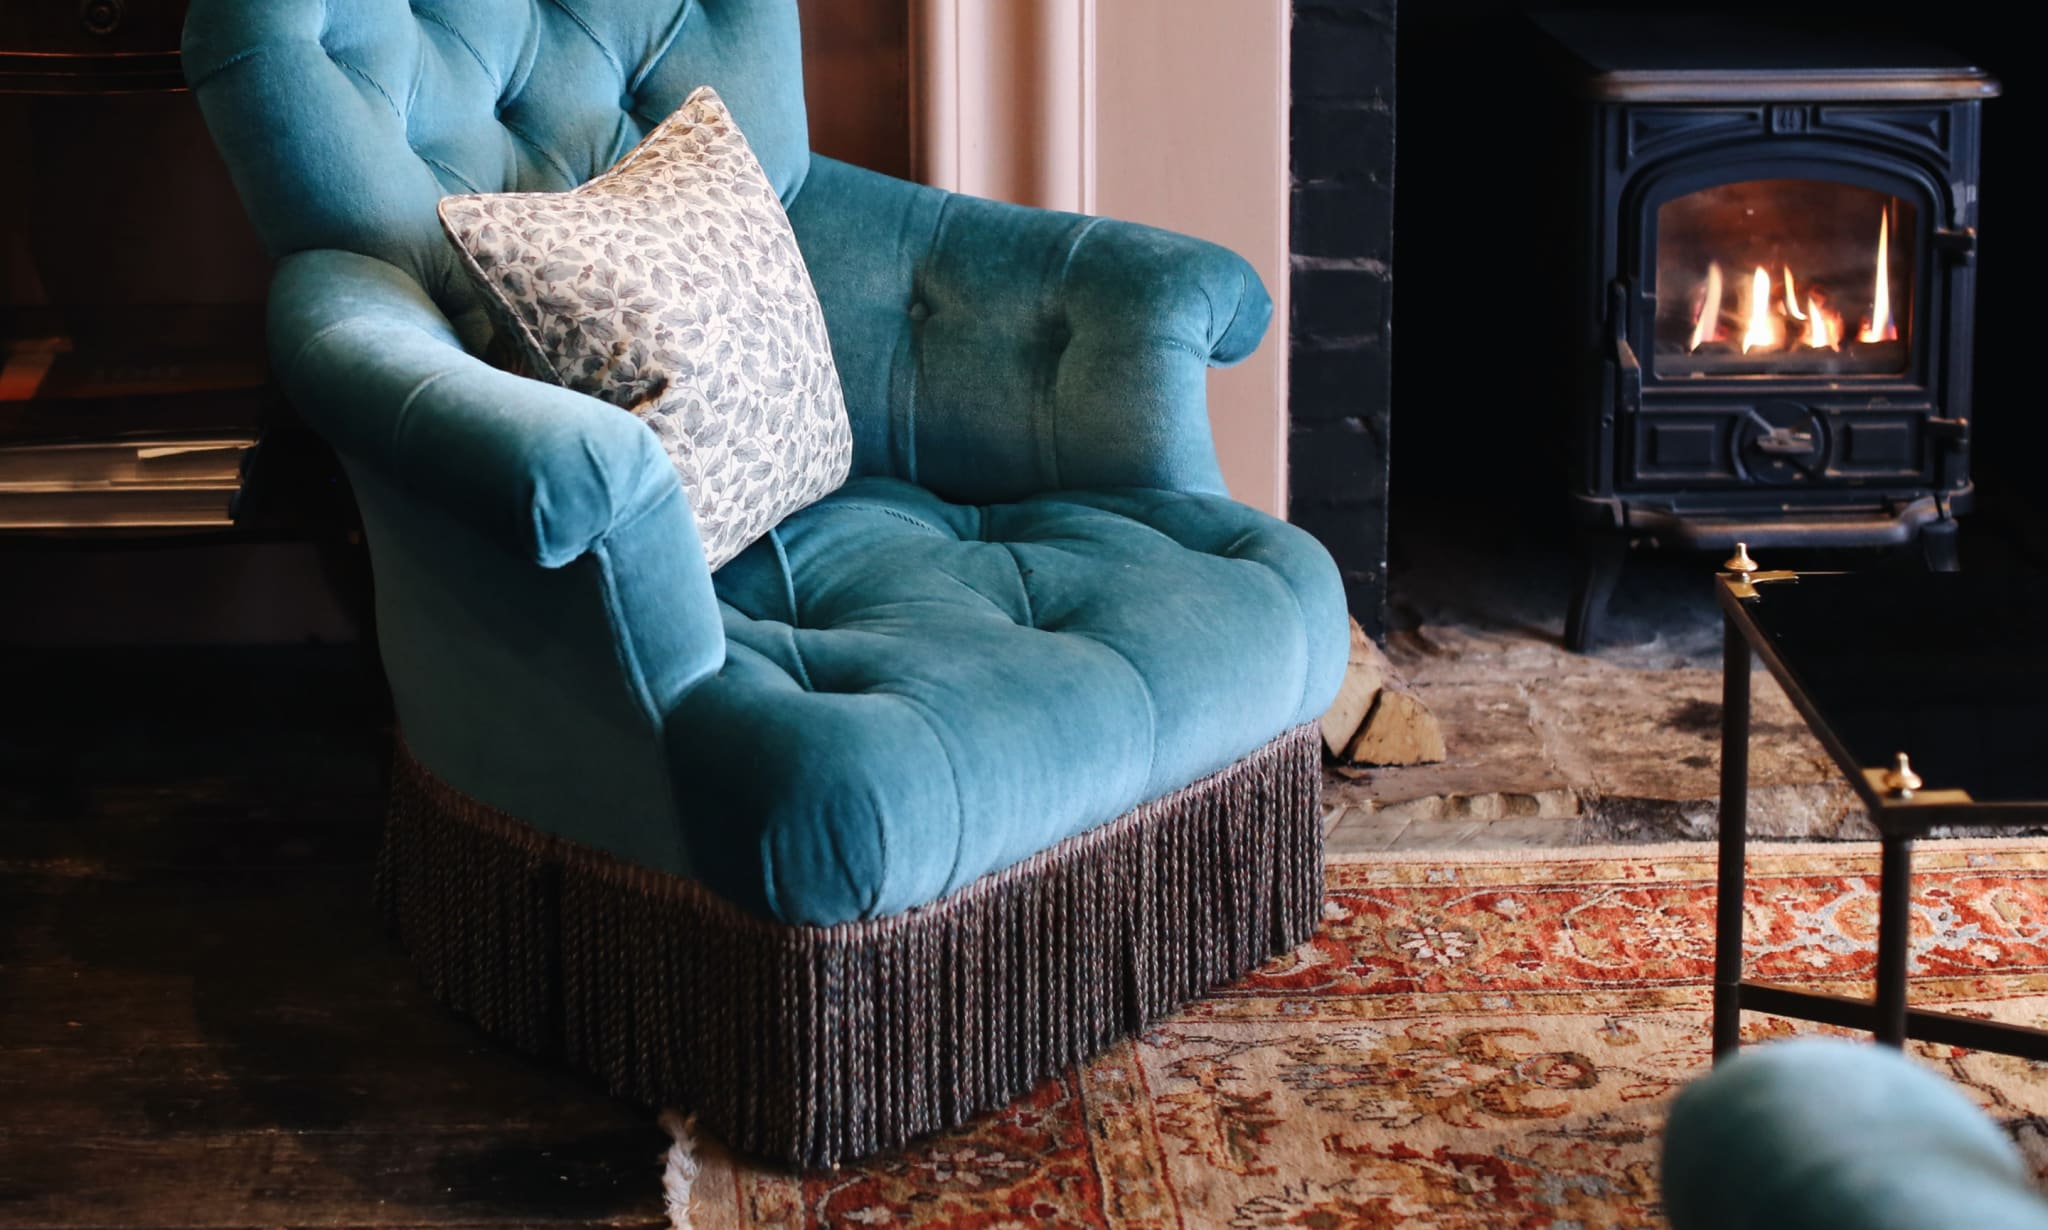 A blue armchair on a rug next to a lit wood burning stove